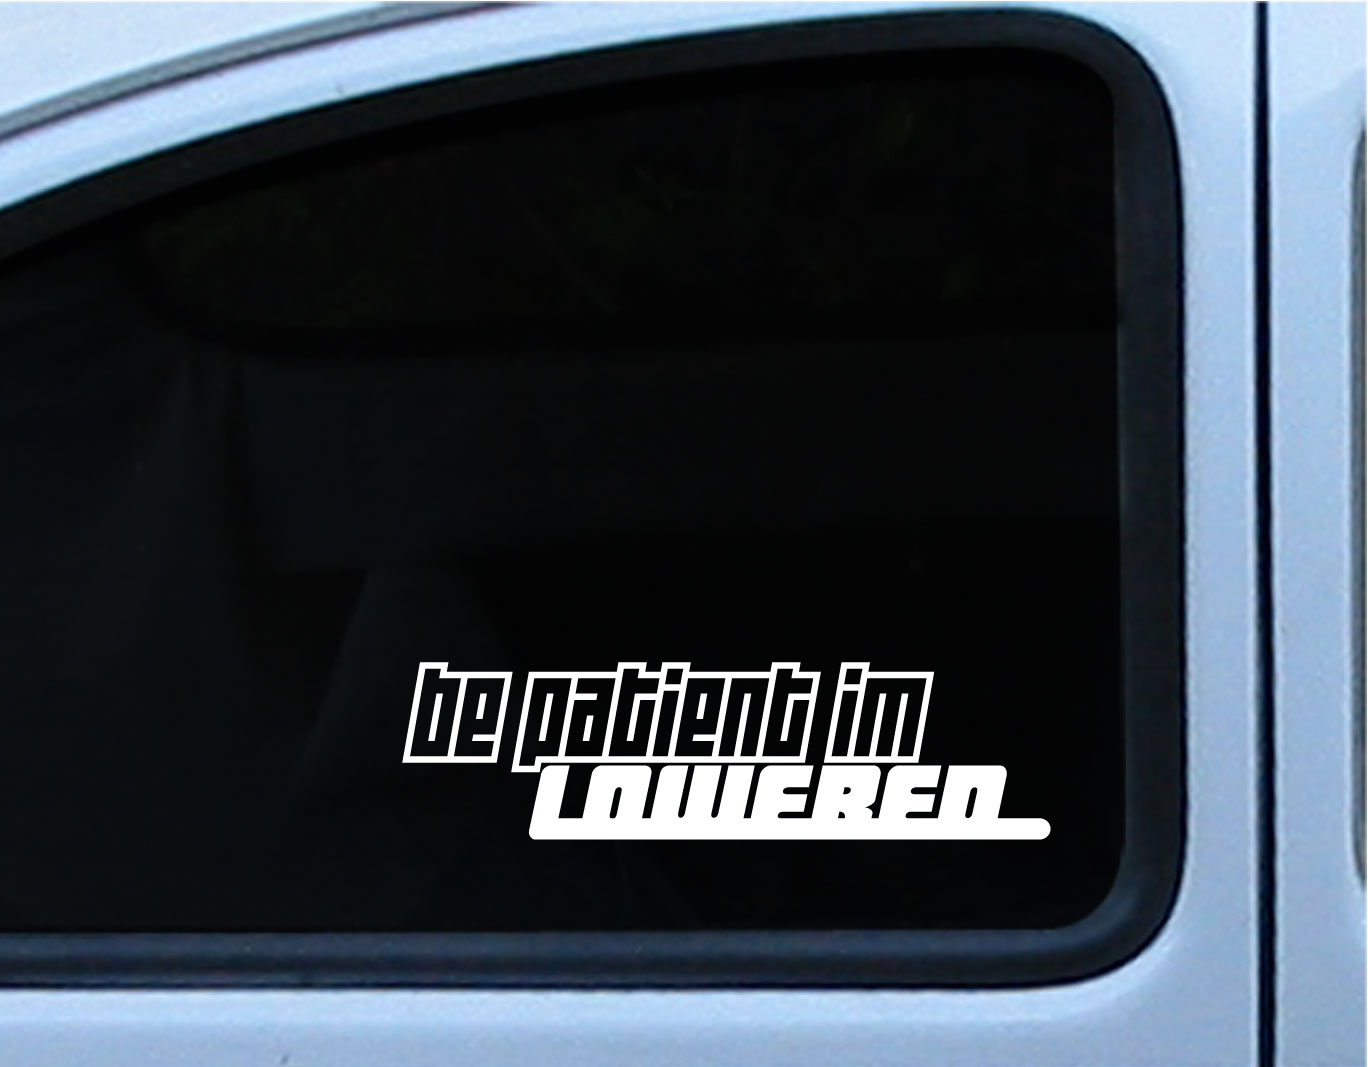 JDM Euro Funny Be Patient Im Lowered Hellaflush Car - Car window decal stickers online